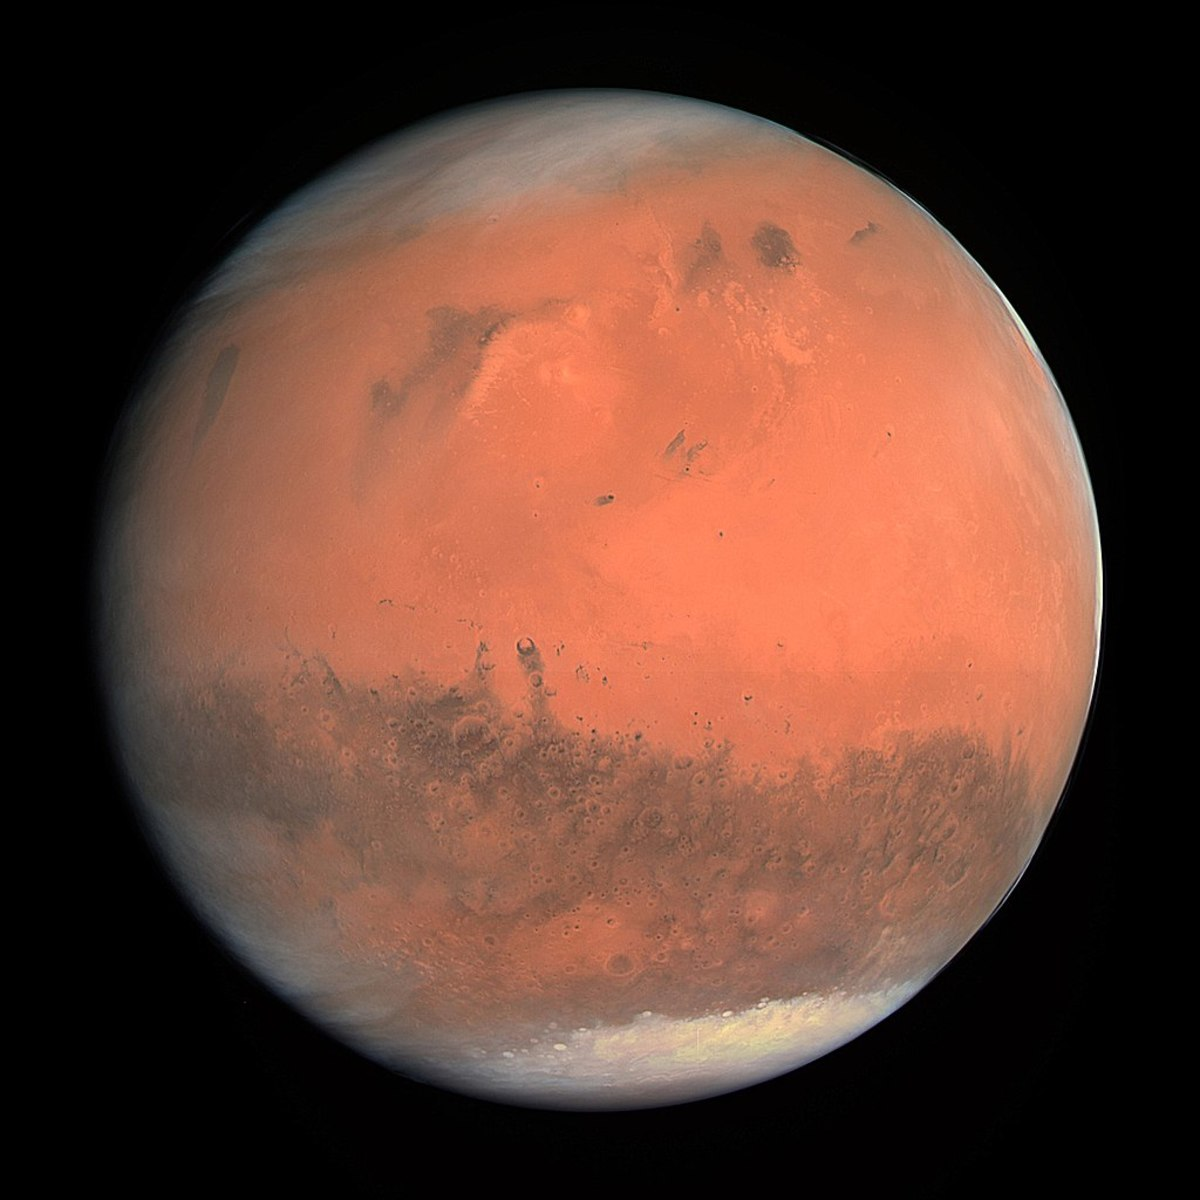 Mars: Quick Facts